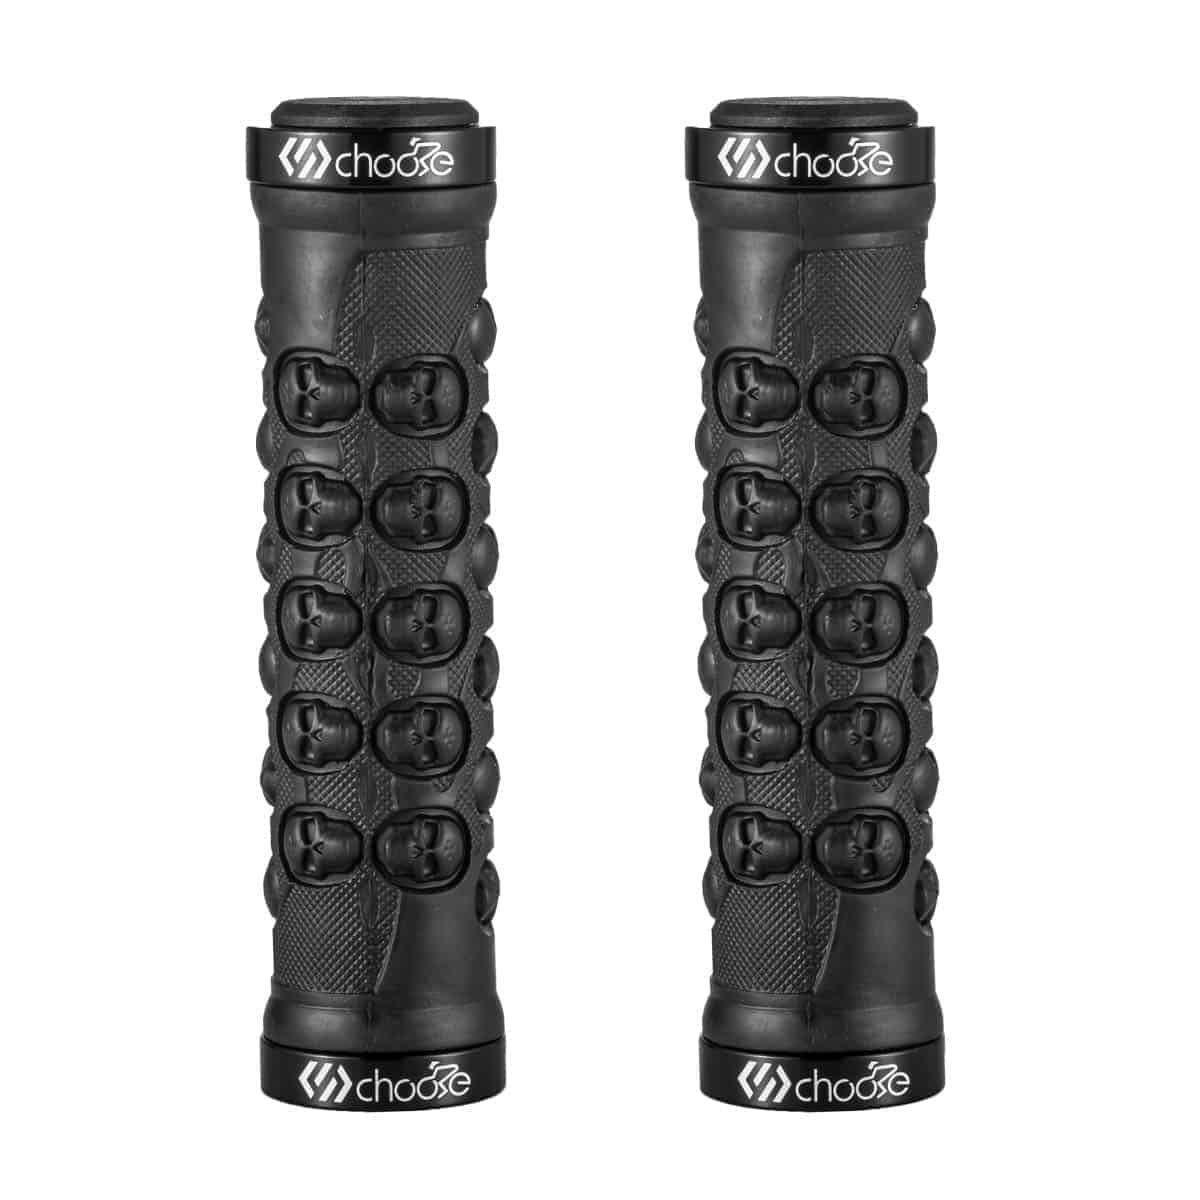 Choose Mountain Bike Grips